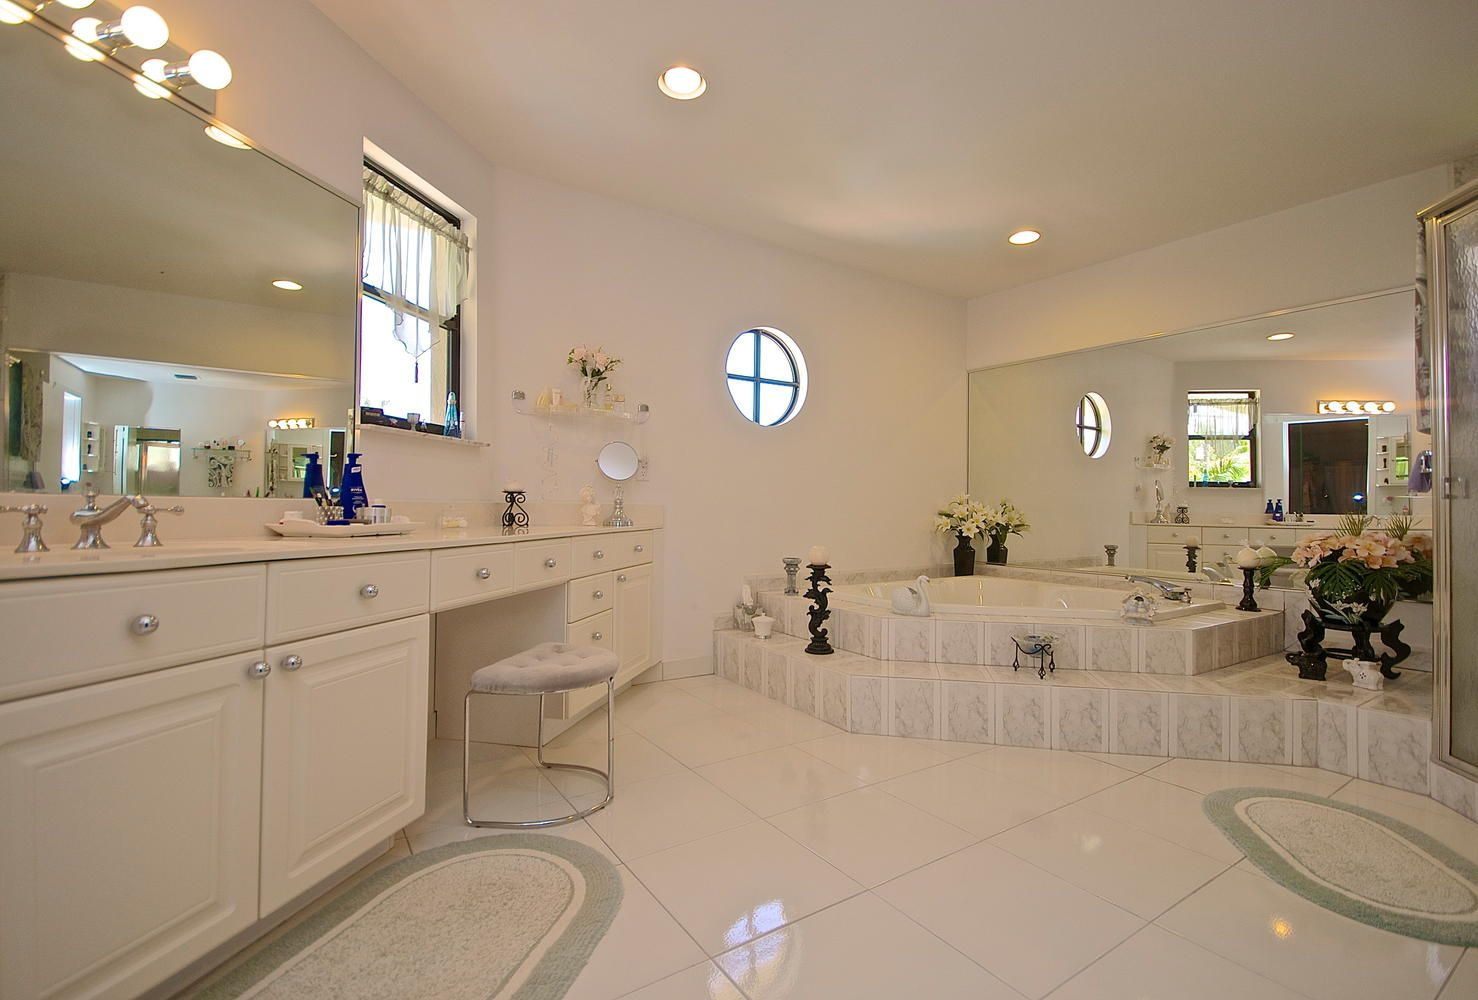 Jacuzzi in master bedroom  HER large master bathroom with a jacuzzi and shower  Miami Real